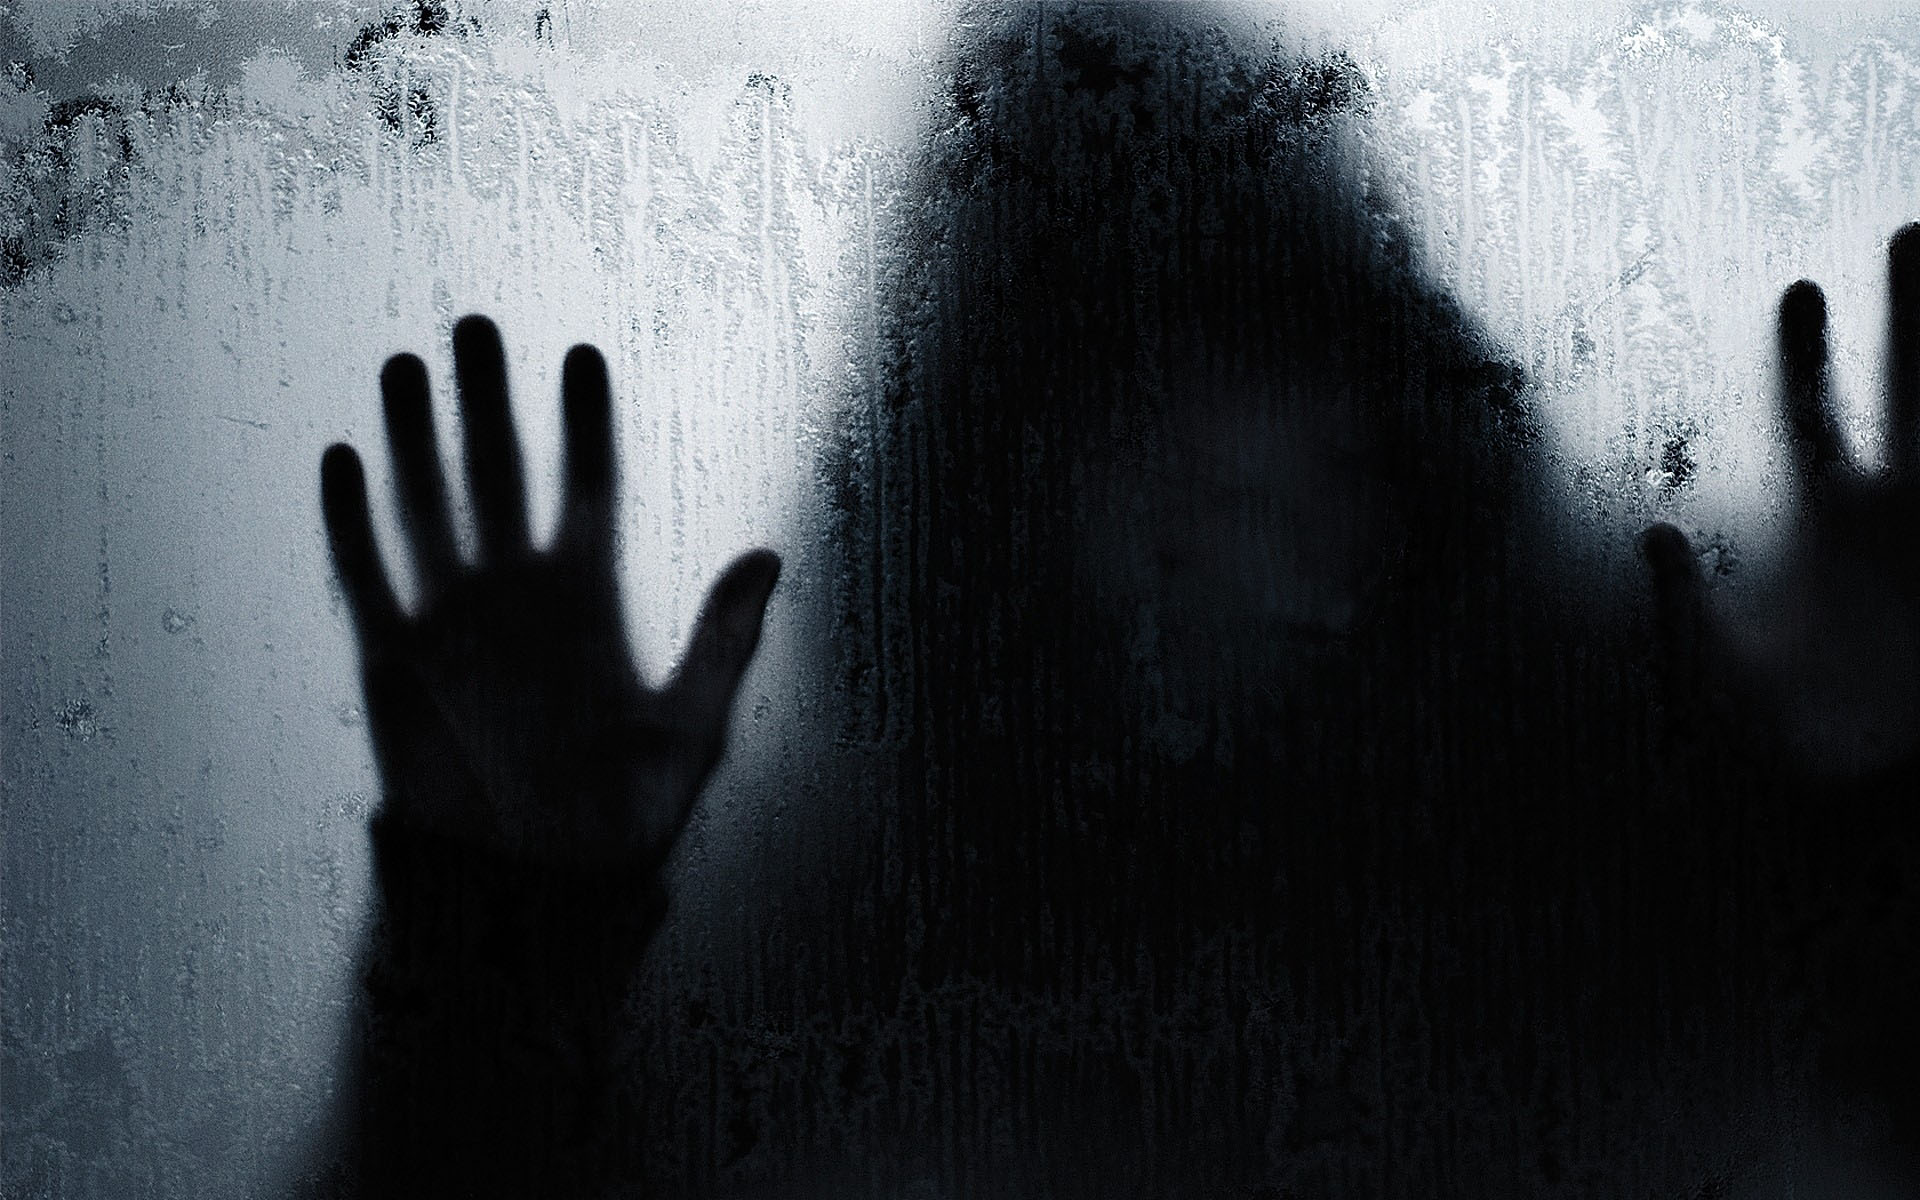 Scary Images wallpaper Real Scary Images hd wallpaper background 1920x1200